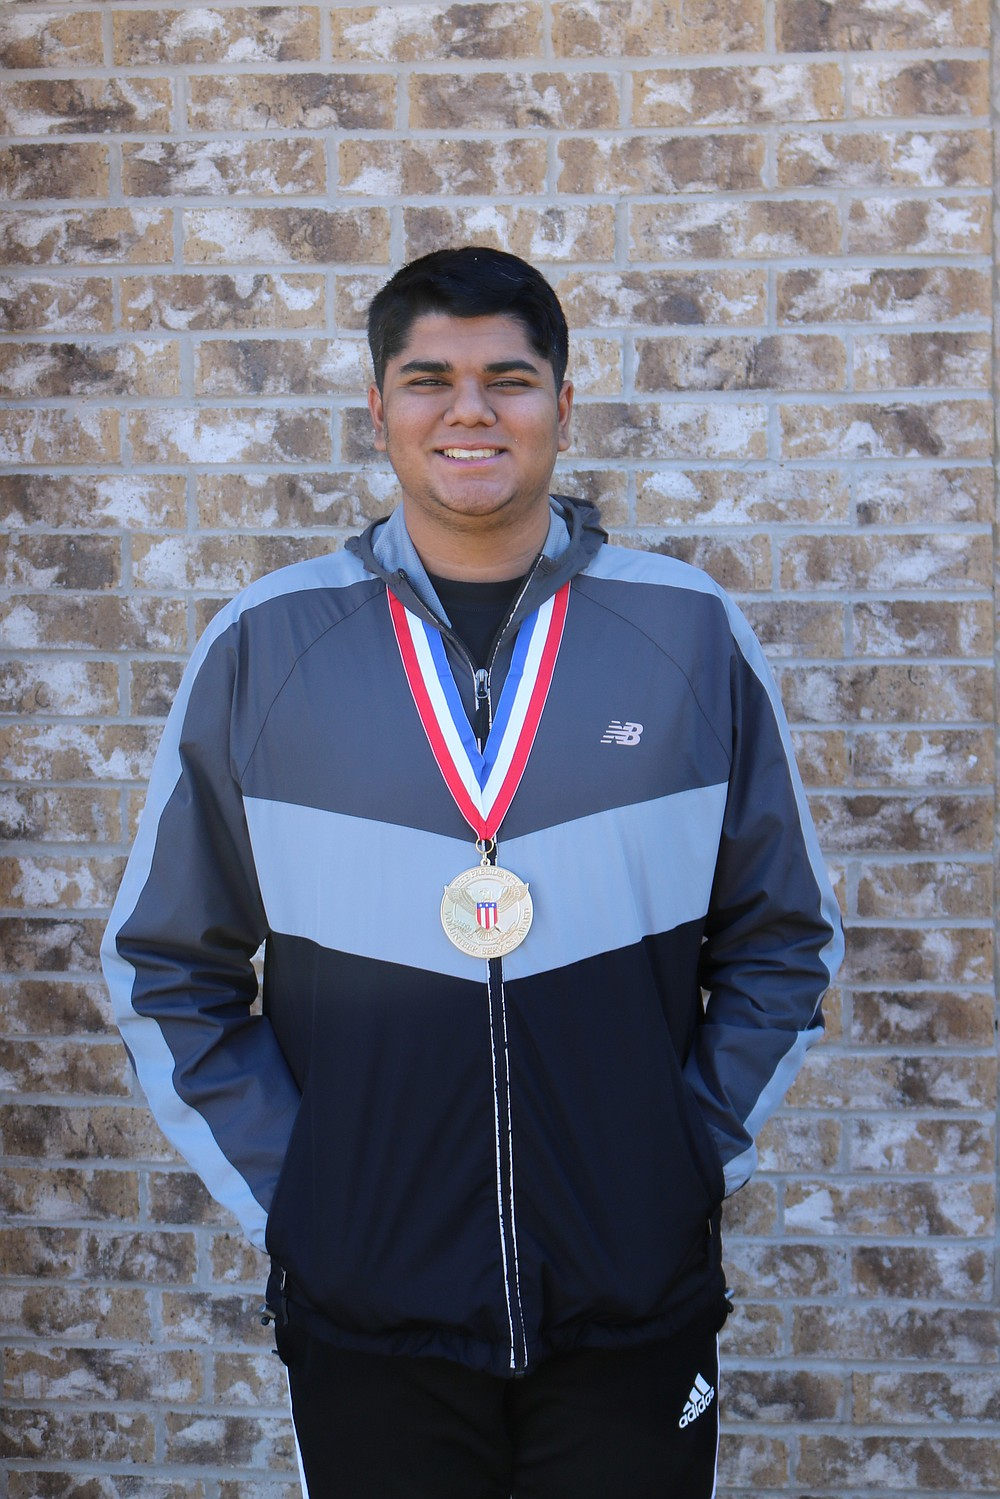 Dylan Patel — shown here with his Presidential Volunteer Service Award — has served as a volunteer counselor for Camp Aldersgate, as a volunteer at the information center at St. Vincent's Infirmary and as a member of the North Little Rock Mayor's Youth Council. These days, he's busy helping other students struggling with virtual school tackle difficult math problems.